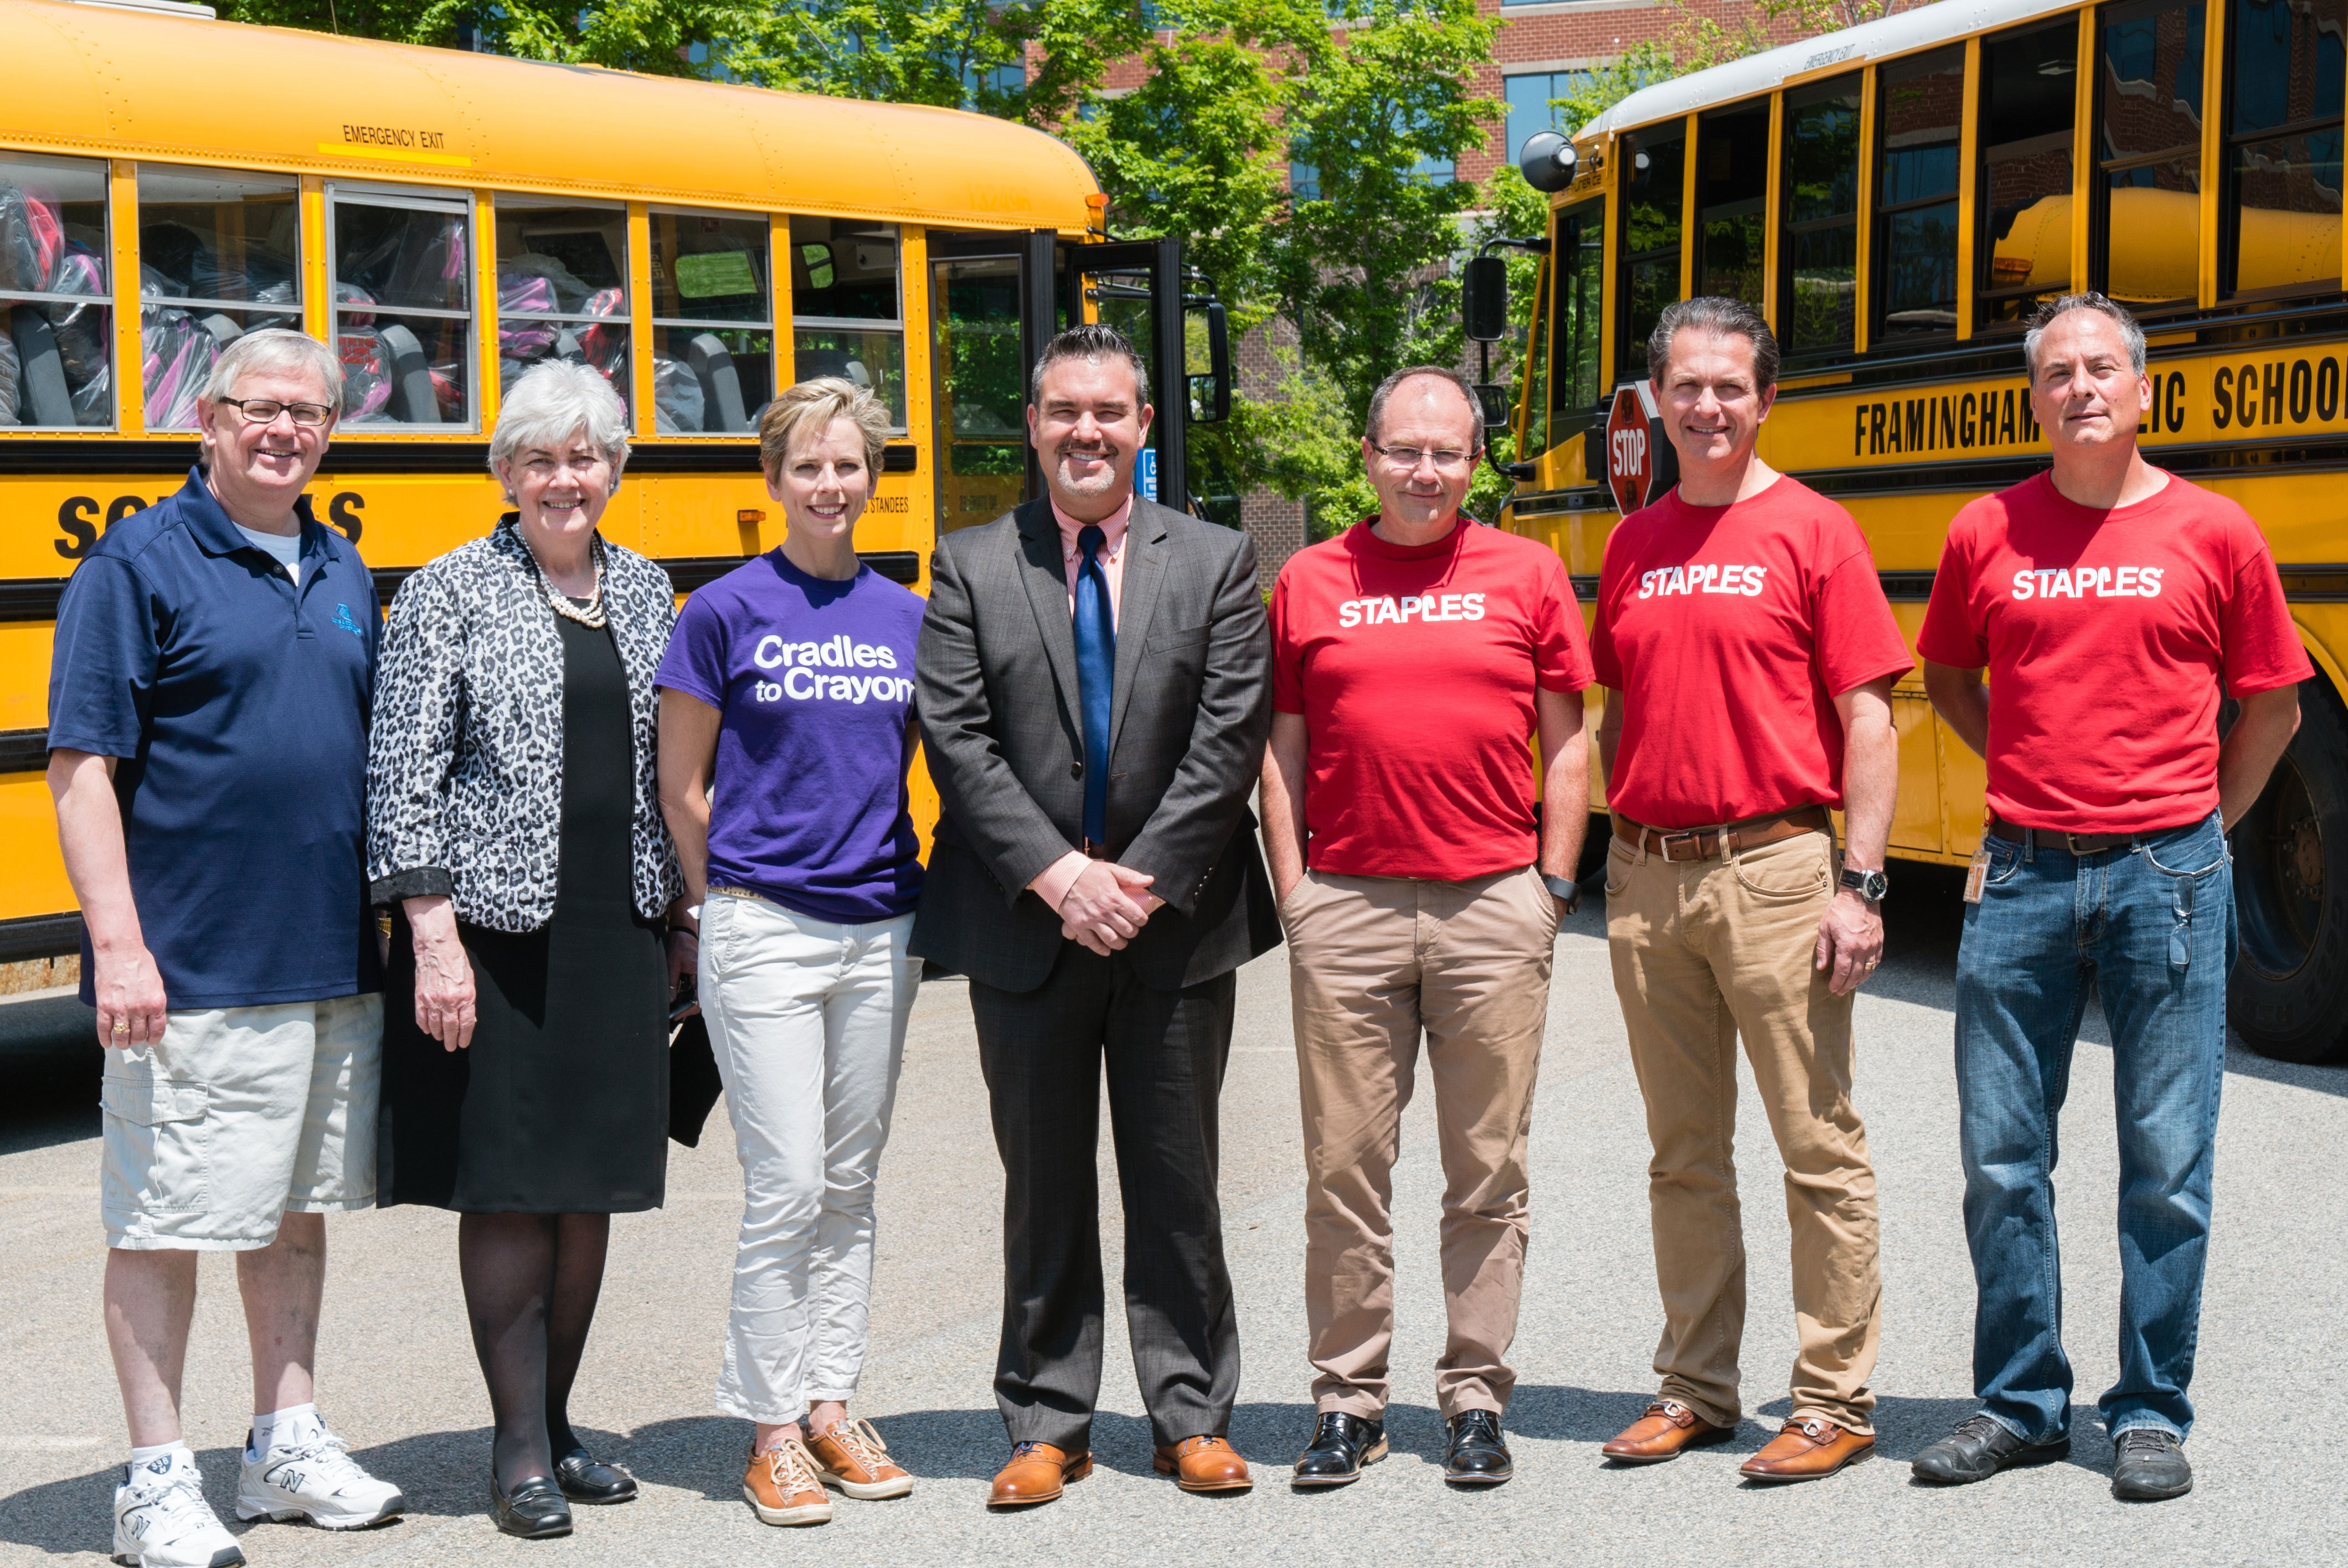 (Left to right) Fran Hurley, President of Boys & Clubs of MetroWest; Dr. Catherine Latham, Superintendent of Lynn Public Schools; Lynn Margherio, Founder and CEO of Cradles to Crayons; Dr. Robert Tremblay, Superintendent of Framingham Public Schools; Regis Mulot, Chief Human Resources Officer of Staples and Staples Foundation Executive Vice President; Peter Scala, Chief Merchandising Officer of Staples, and Wendell Butler, Regional Vice President Supply Chain of Staples. (Photo: Business Wire)